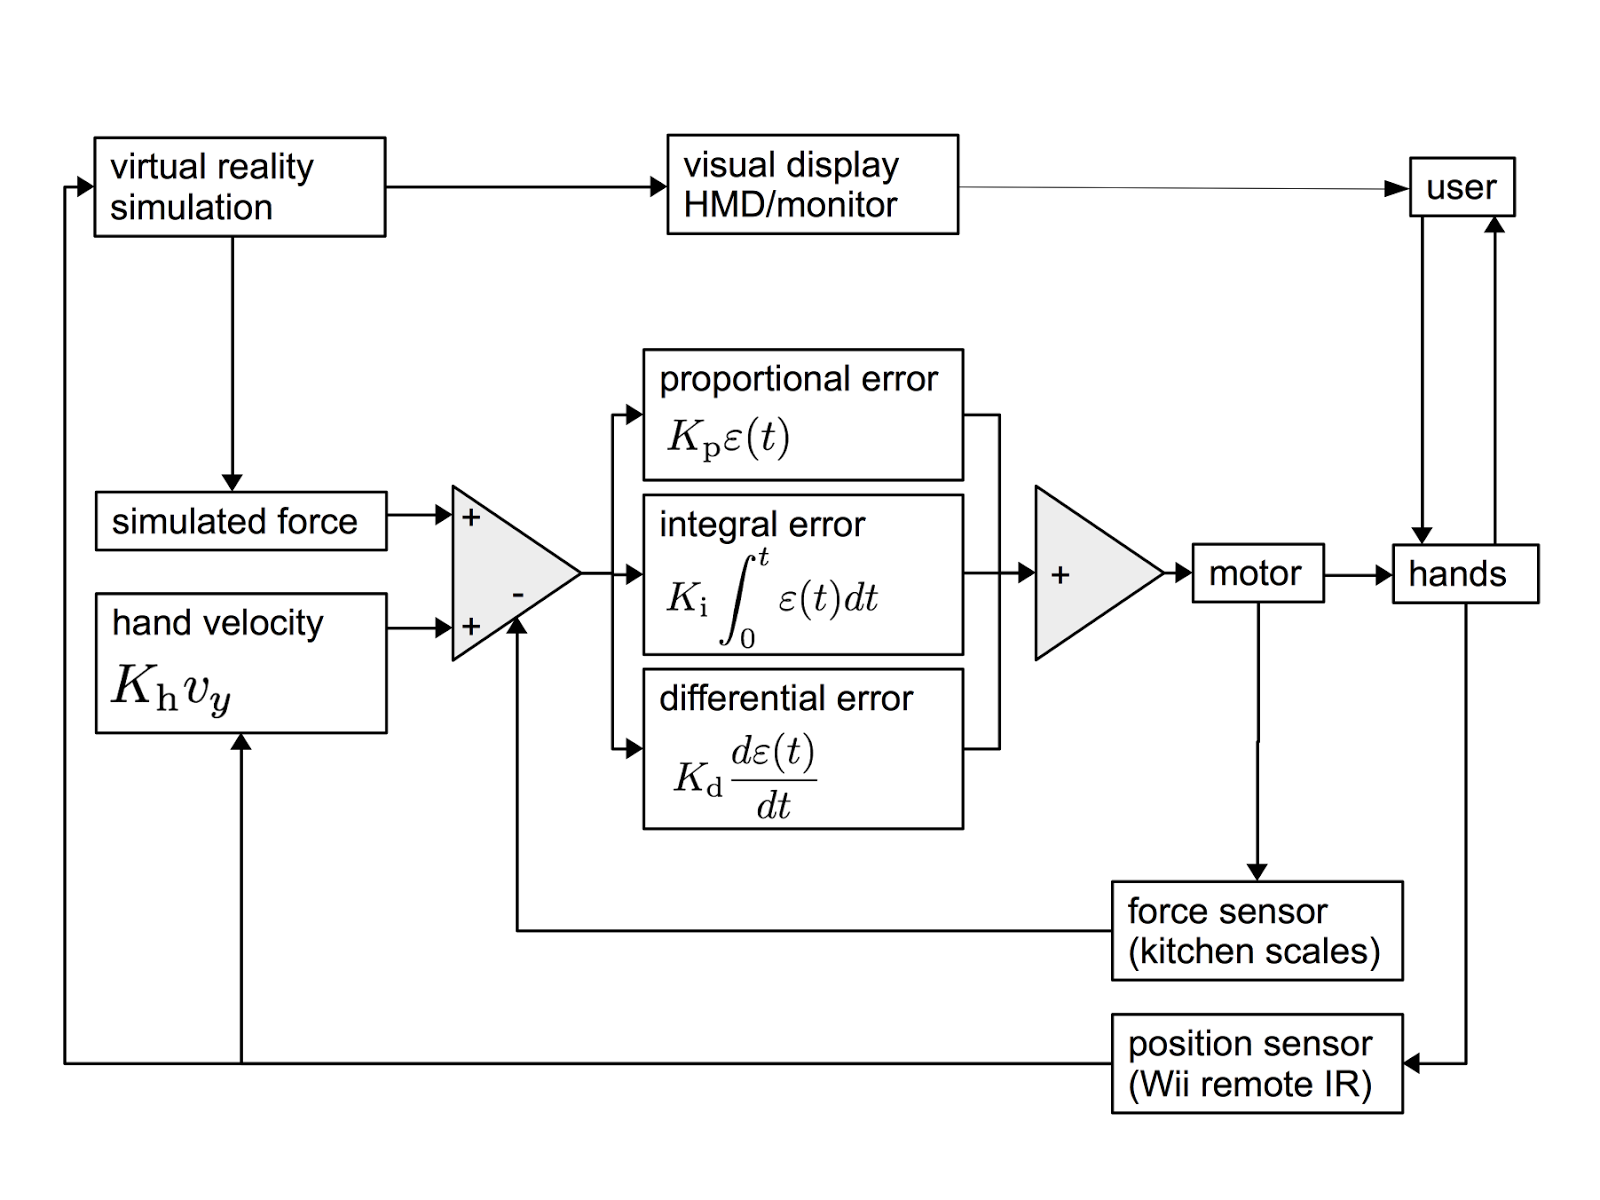 medium resolution of here is a block diagram to make it clearer